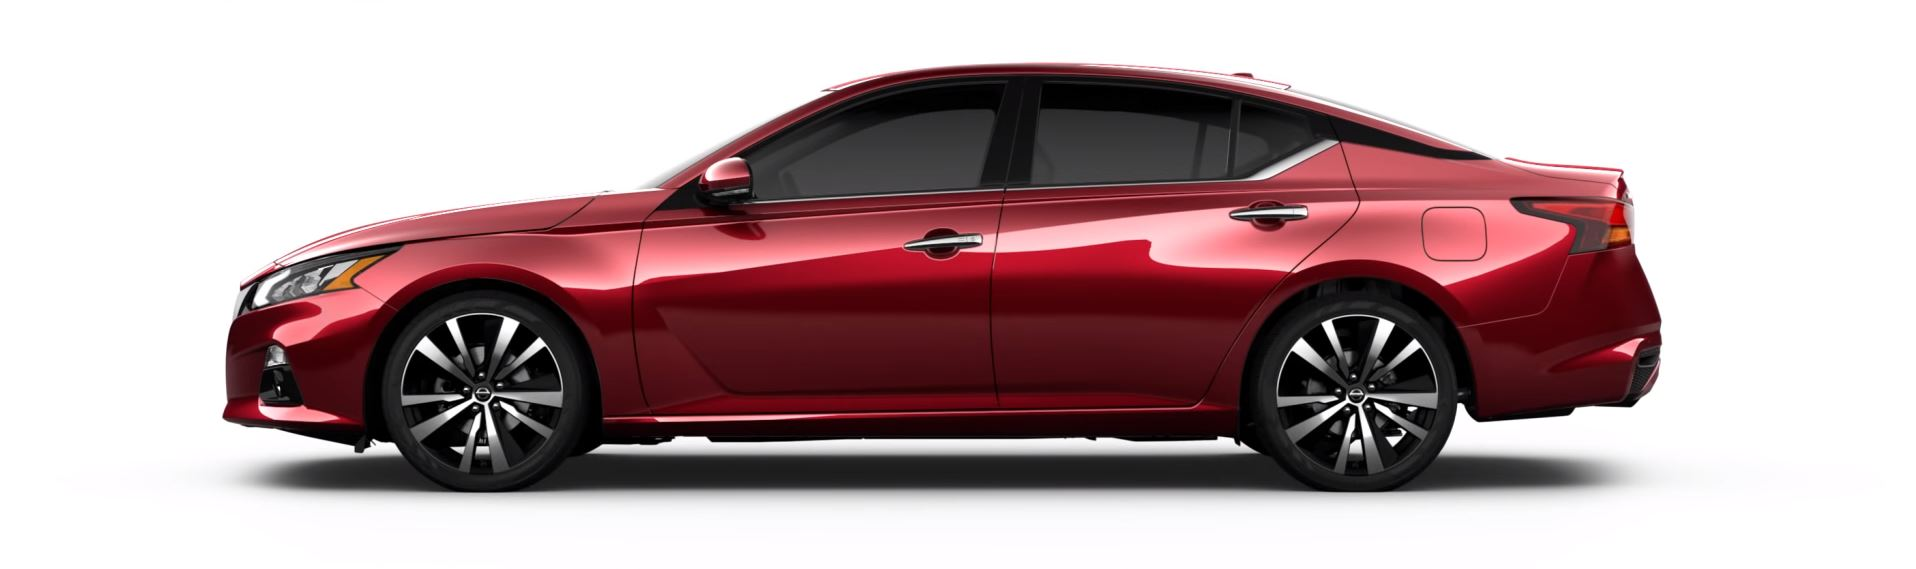 Side view of a red 2019 Nissan Altima on a white background